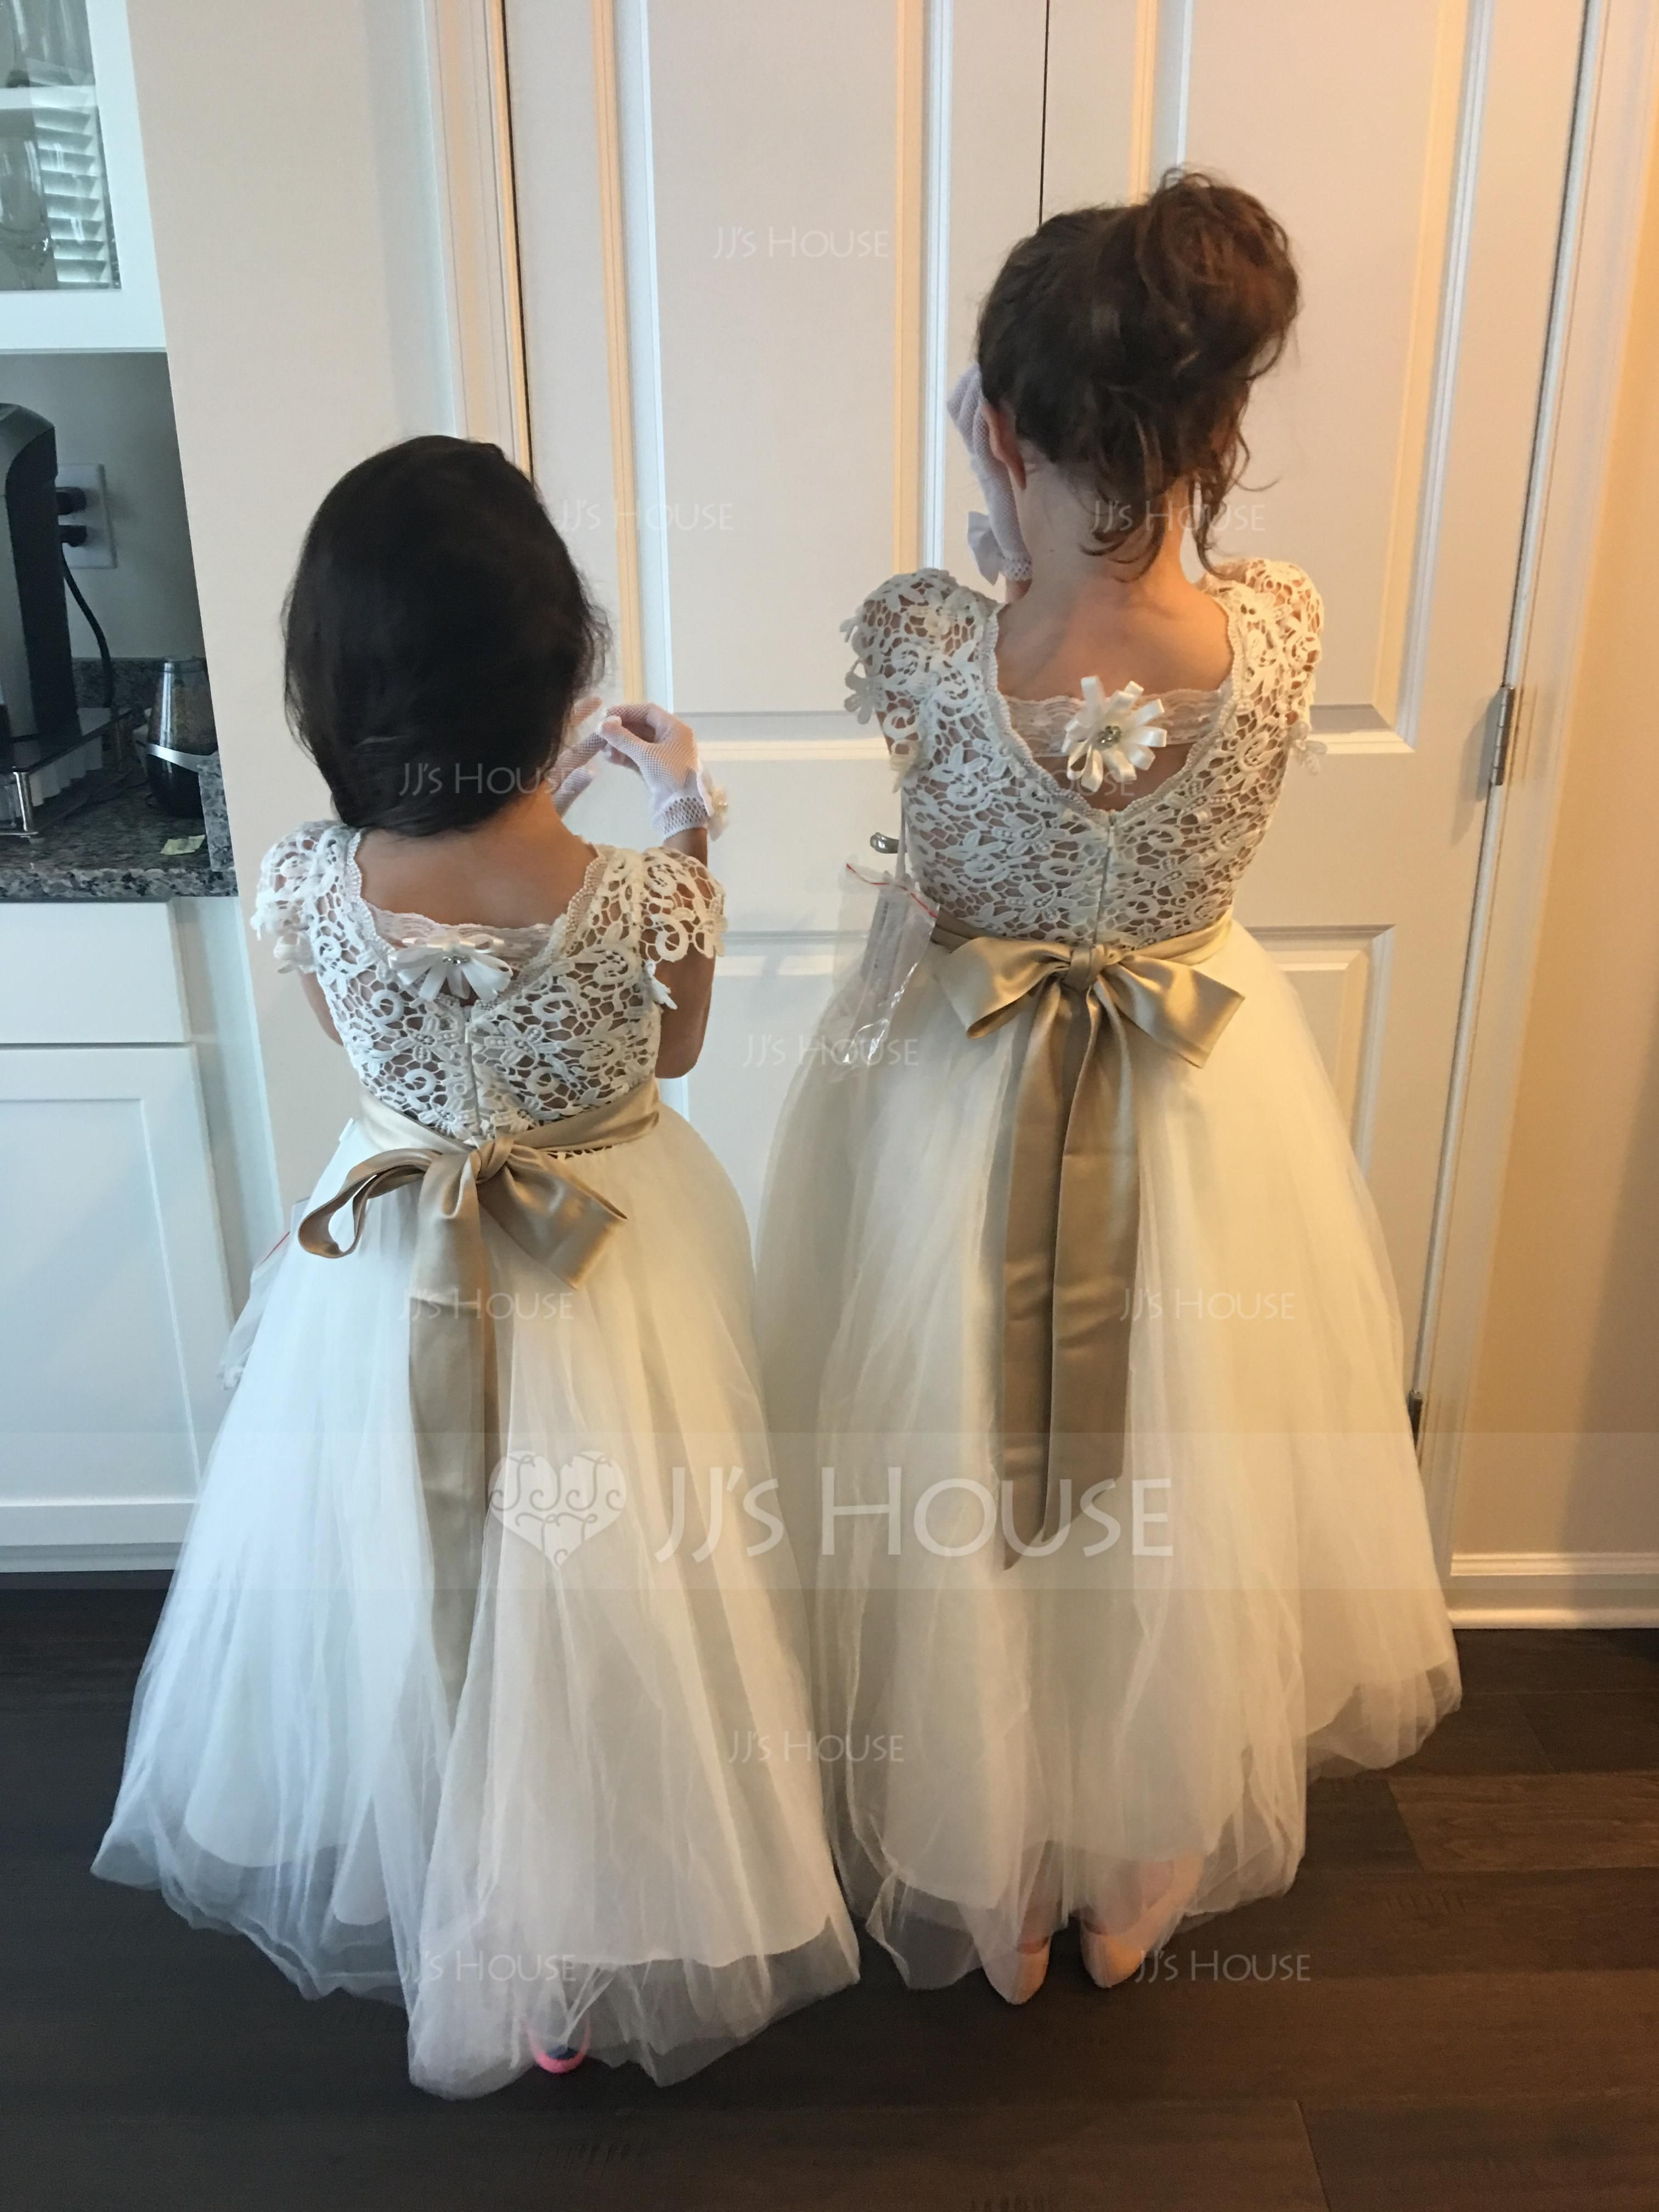 a67cd59bea1 A-Line Princess Knee-length Flower Girl Dress - Tulle Lace Sleeveless Scoop  Neck With Sash Flower(s) Back Hole (010104926) - JJsHouse